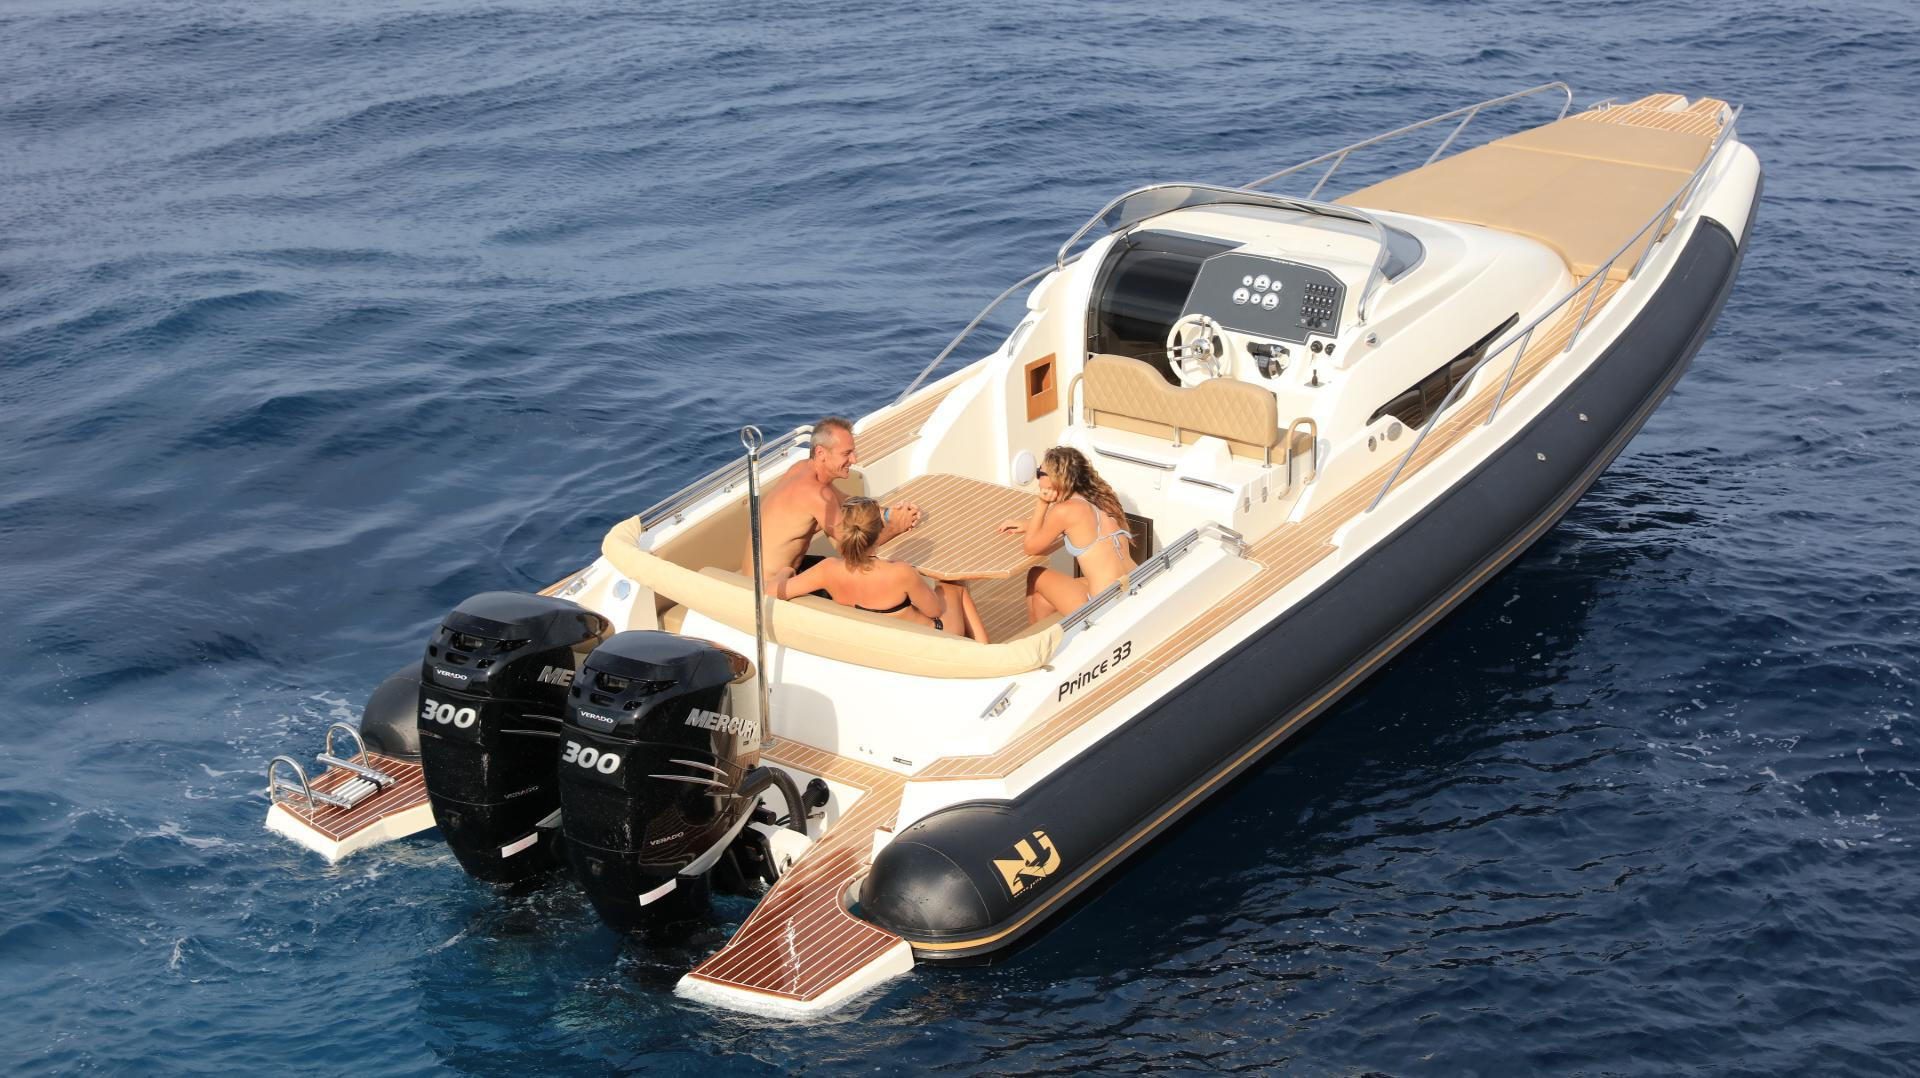 Prince 33 sport cabin - image 6